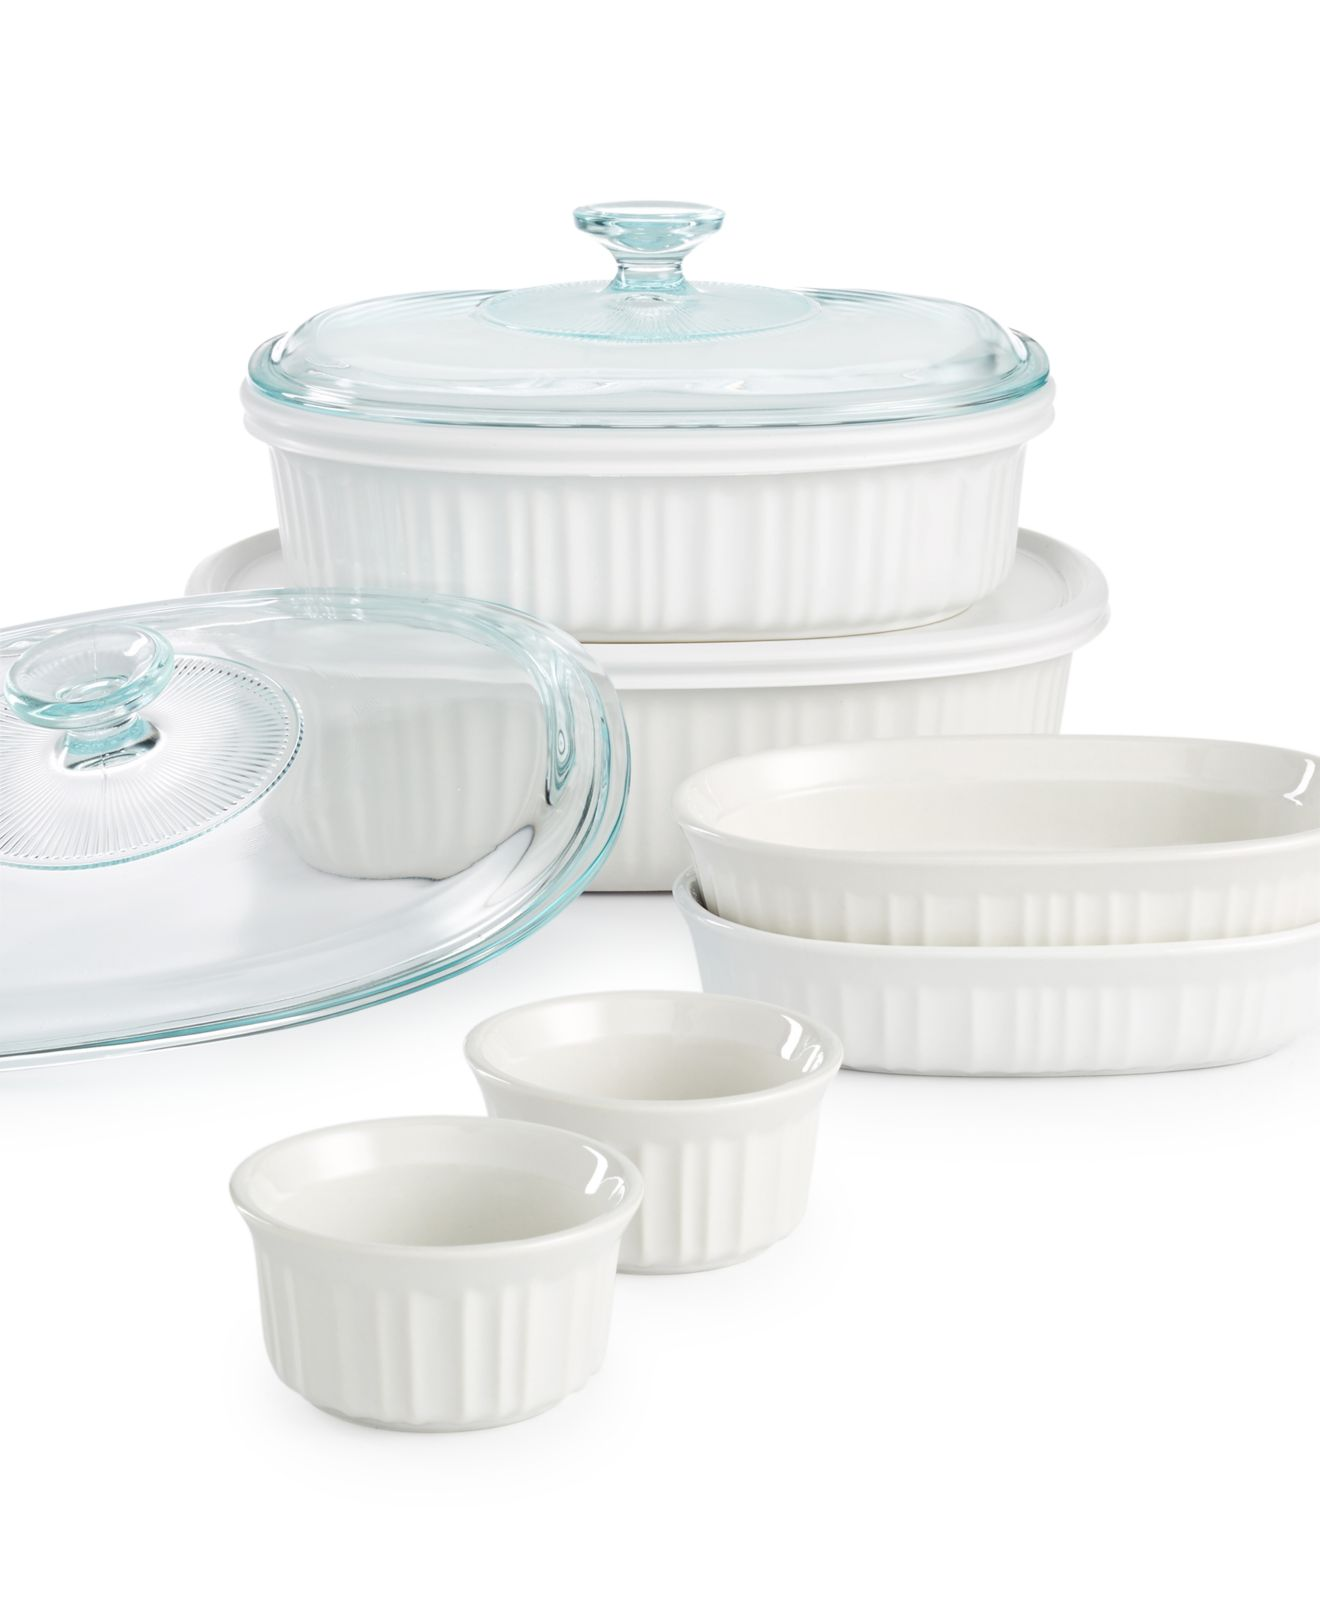 Corningware French White 10-Pc. Bakeware Set - $29.99 w/ FS @ Macy's online deal